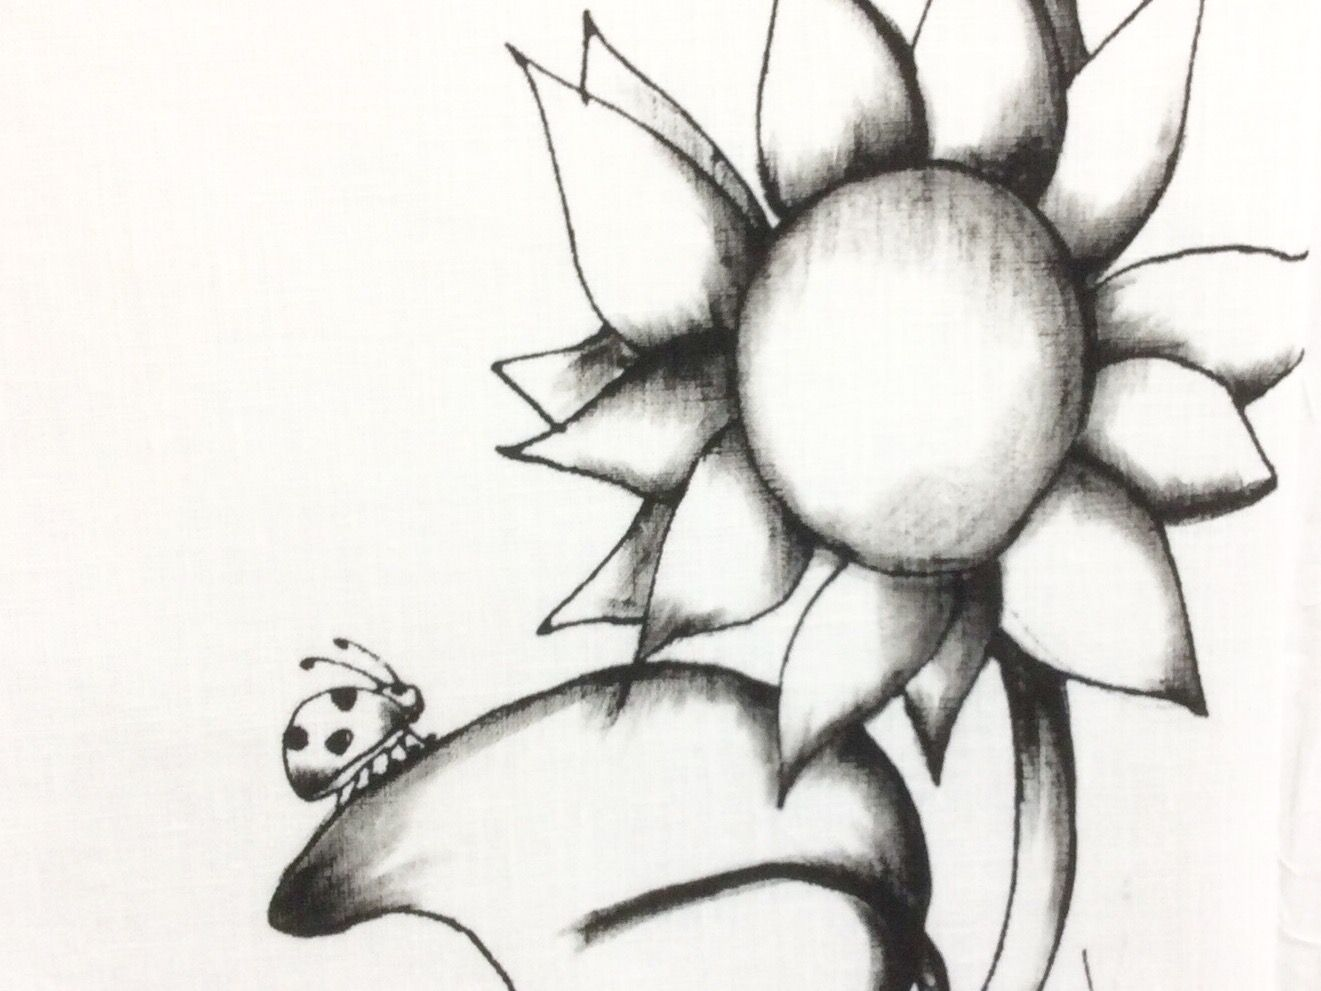 Sunflower Line Drawing : Sunflower illustration from popper design finland illustrations by